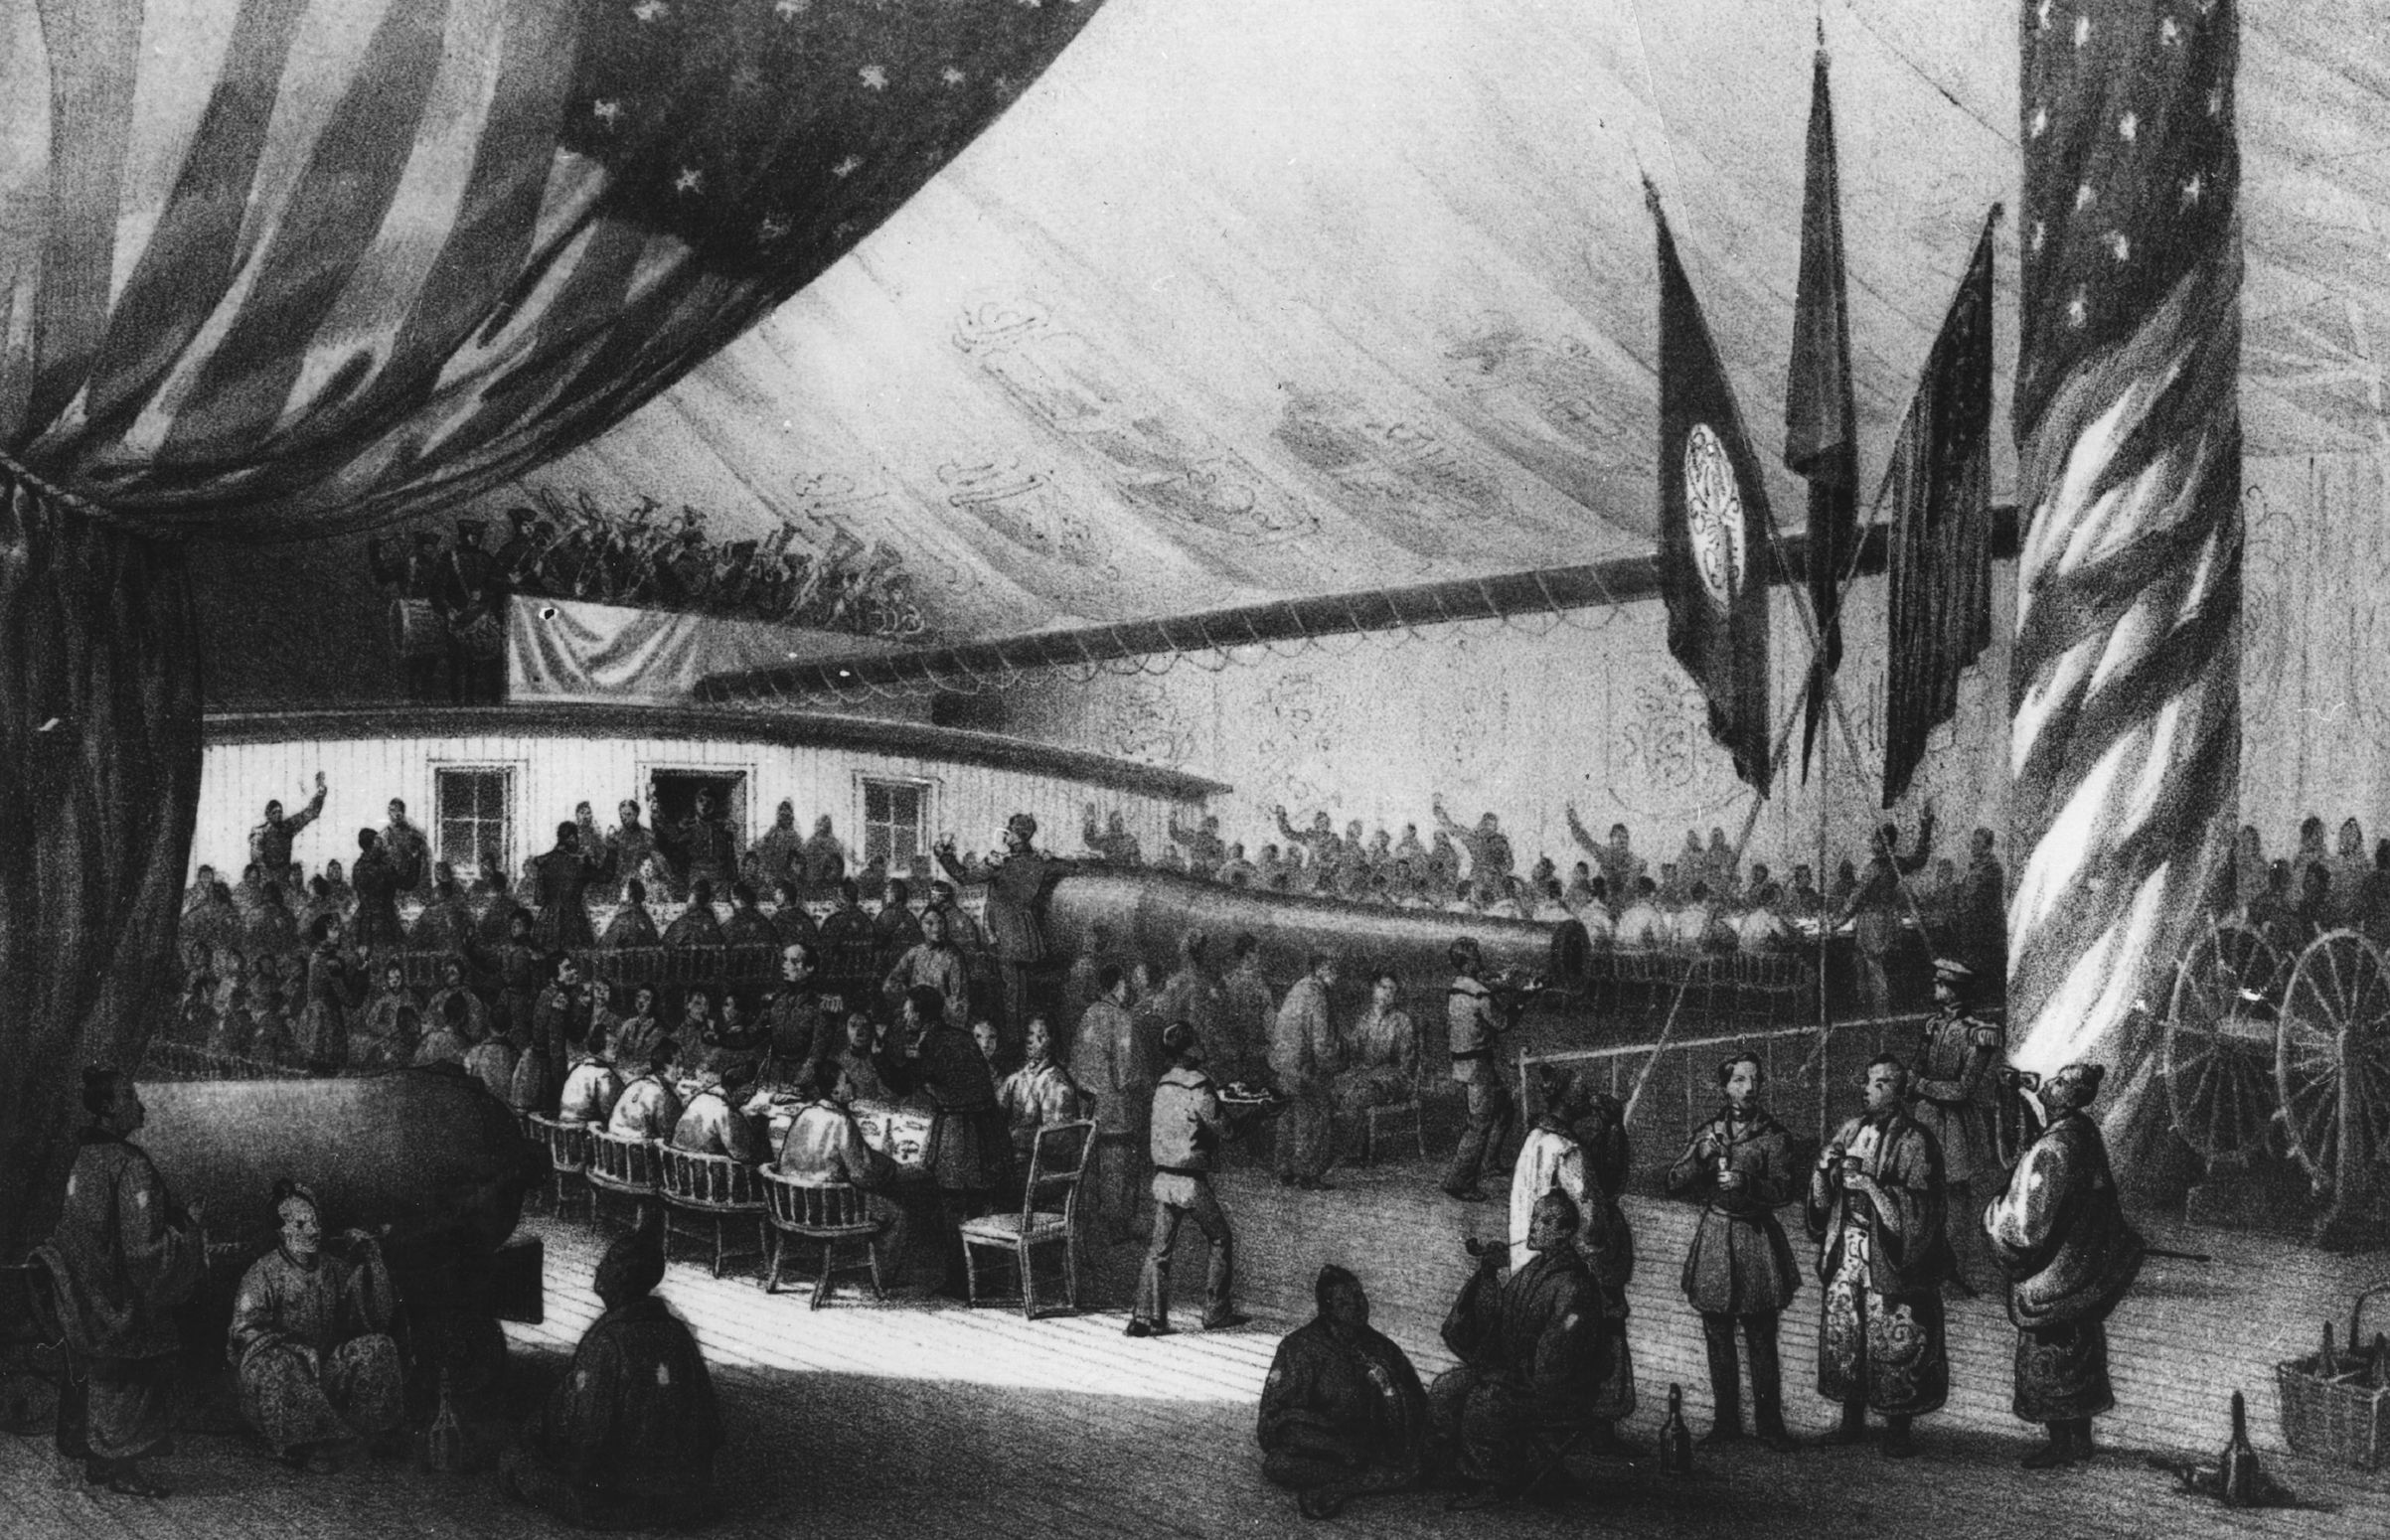 circa 1853: illustration of a dinner given in honor of the Japanese Commissioner on board the USSF Powhatan, during the naval expedition led by the US naval officer Matthew Galbraith Perry (1794 - 1858).